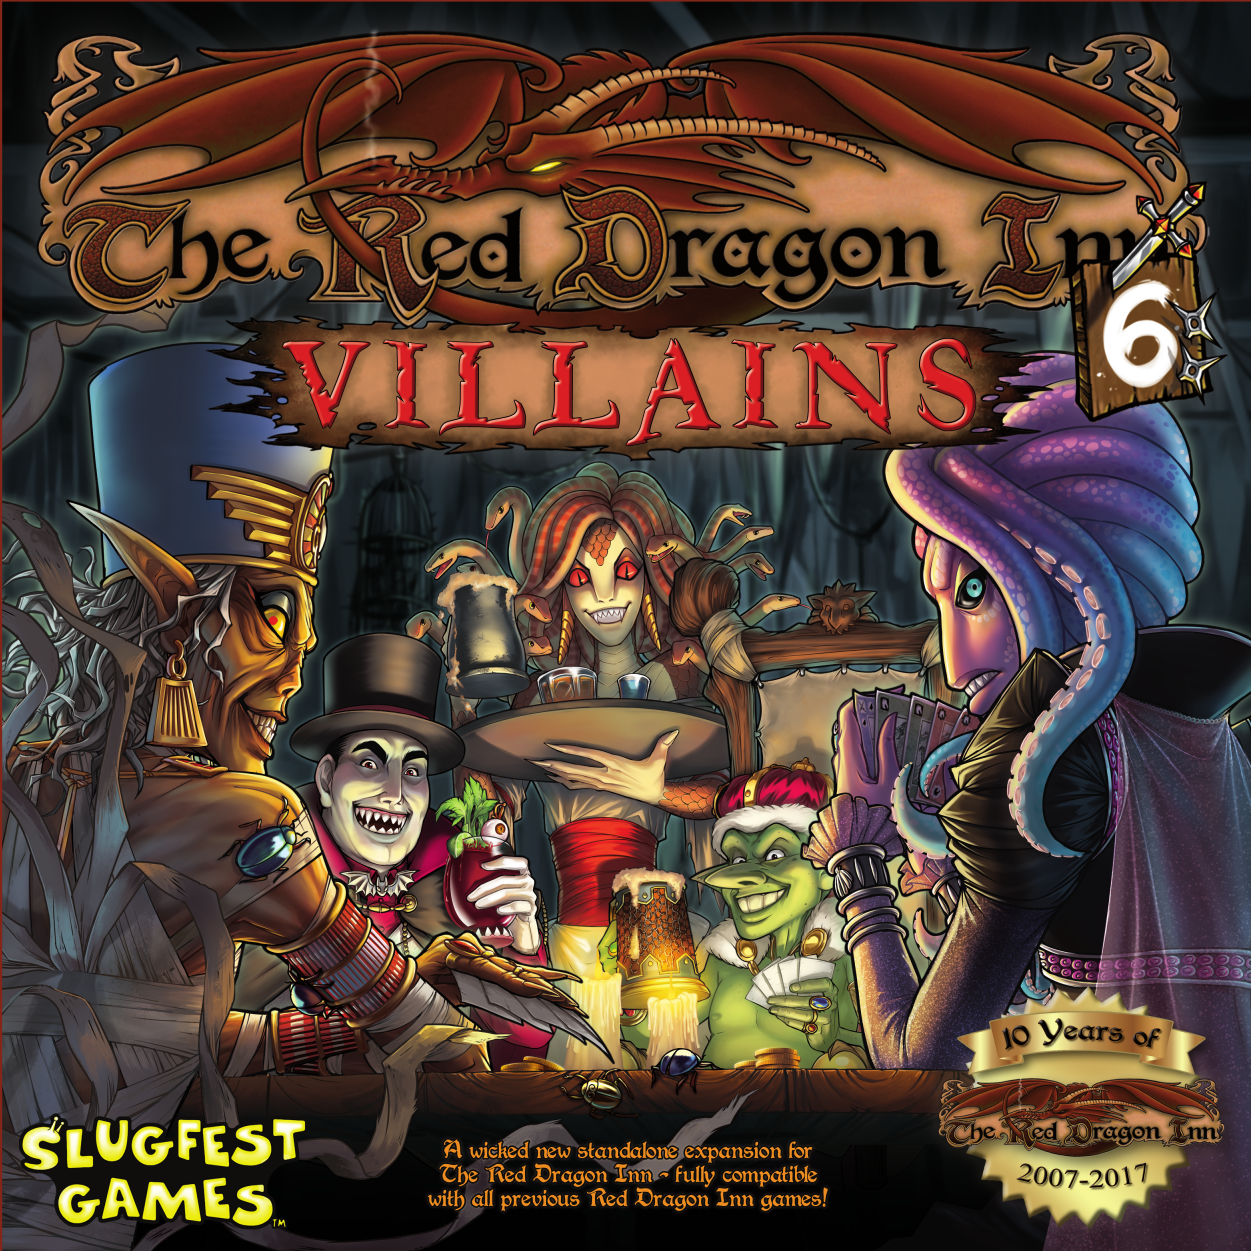 Red Dragon Inn: Villains (Expansion)